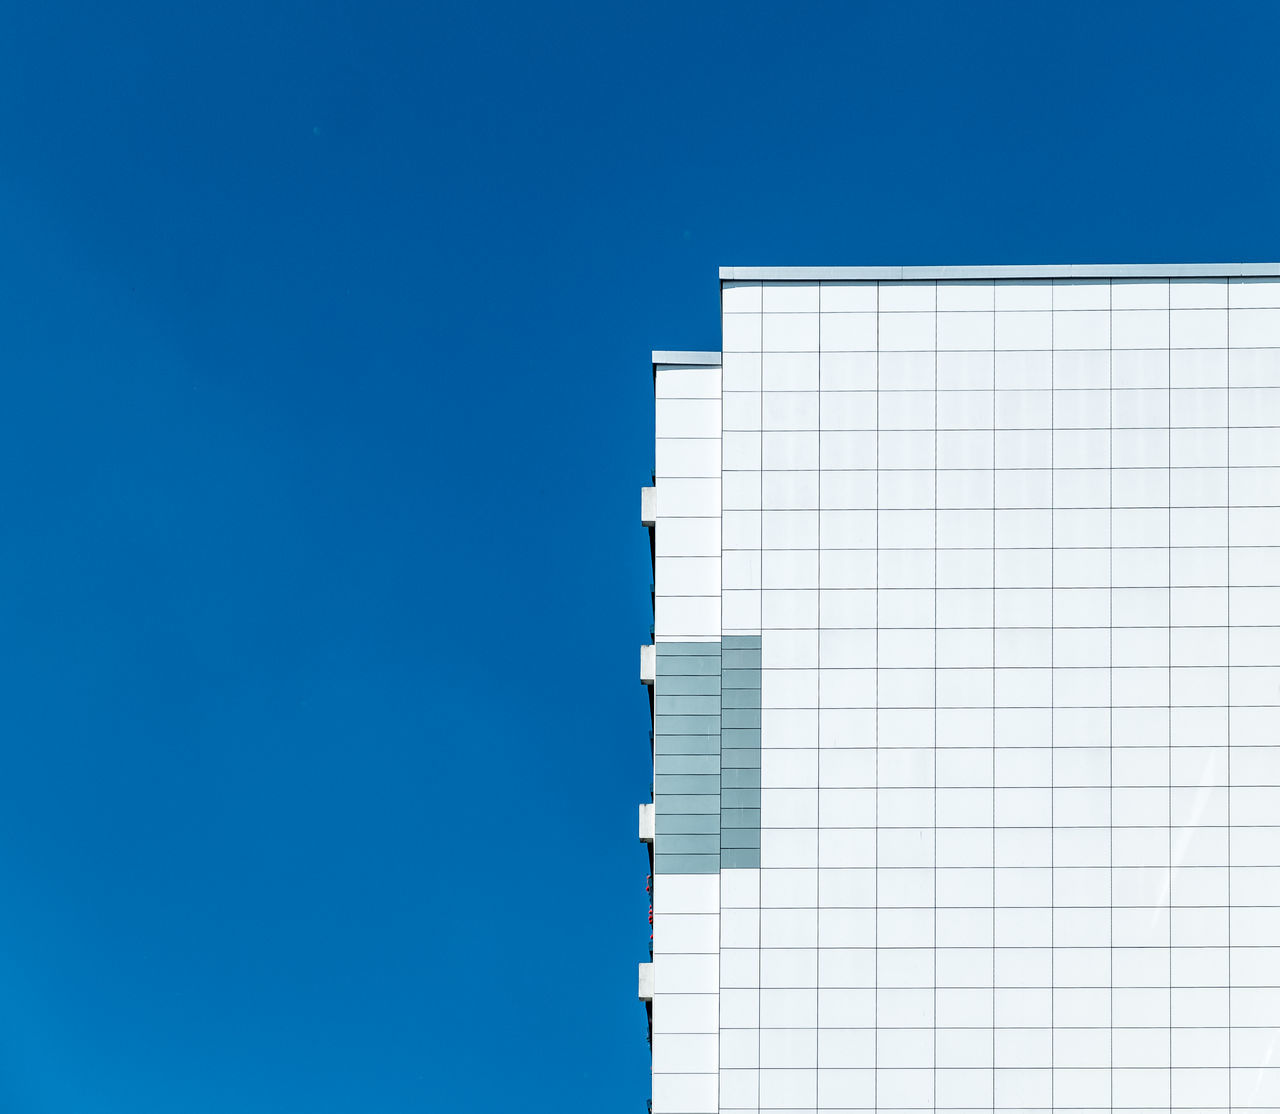 Whitefacade architectural detail architectural feature Architecture Architecture_collection architecturelovers blue building built structure cityexplorer Cityscape Clear sky facade building Façade From My Point Of View minimal minimalism Minimalist minimalistic minimalobsession Modern Modern Architecture no people Fine Art Photography simplicity Minimalist Architecture